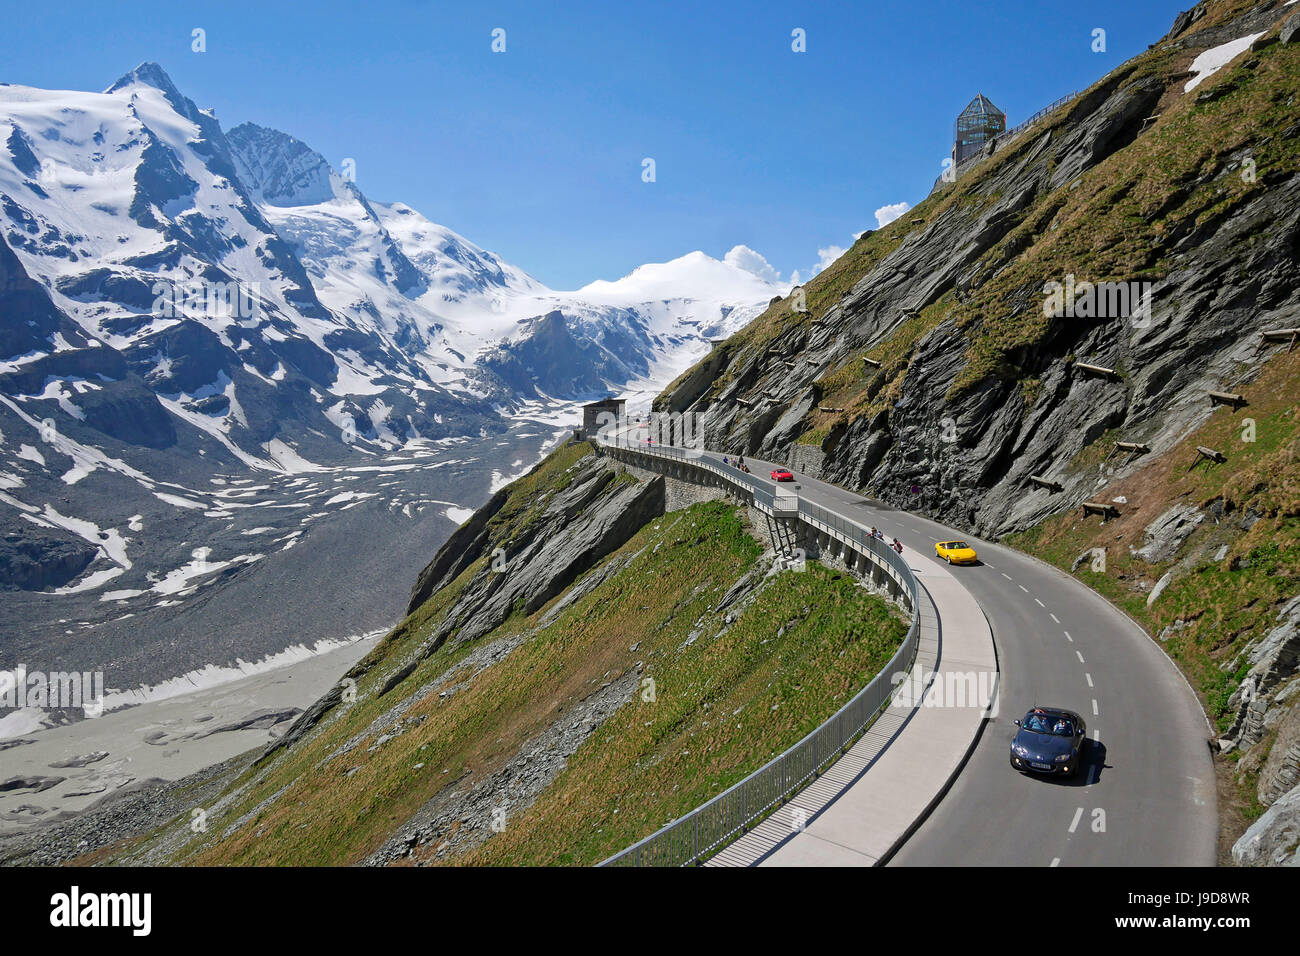 Grossglockner High Alpine Road at Emperor Franz Joseph Height (Kaiser-Franz-Josefs Hohe), Carinthia, Austria - Stock Image